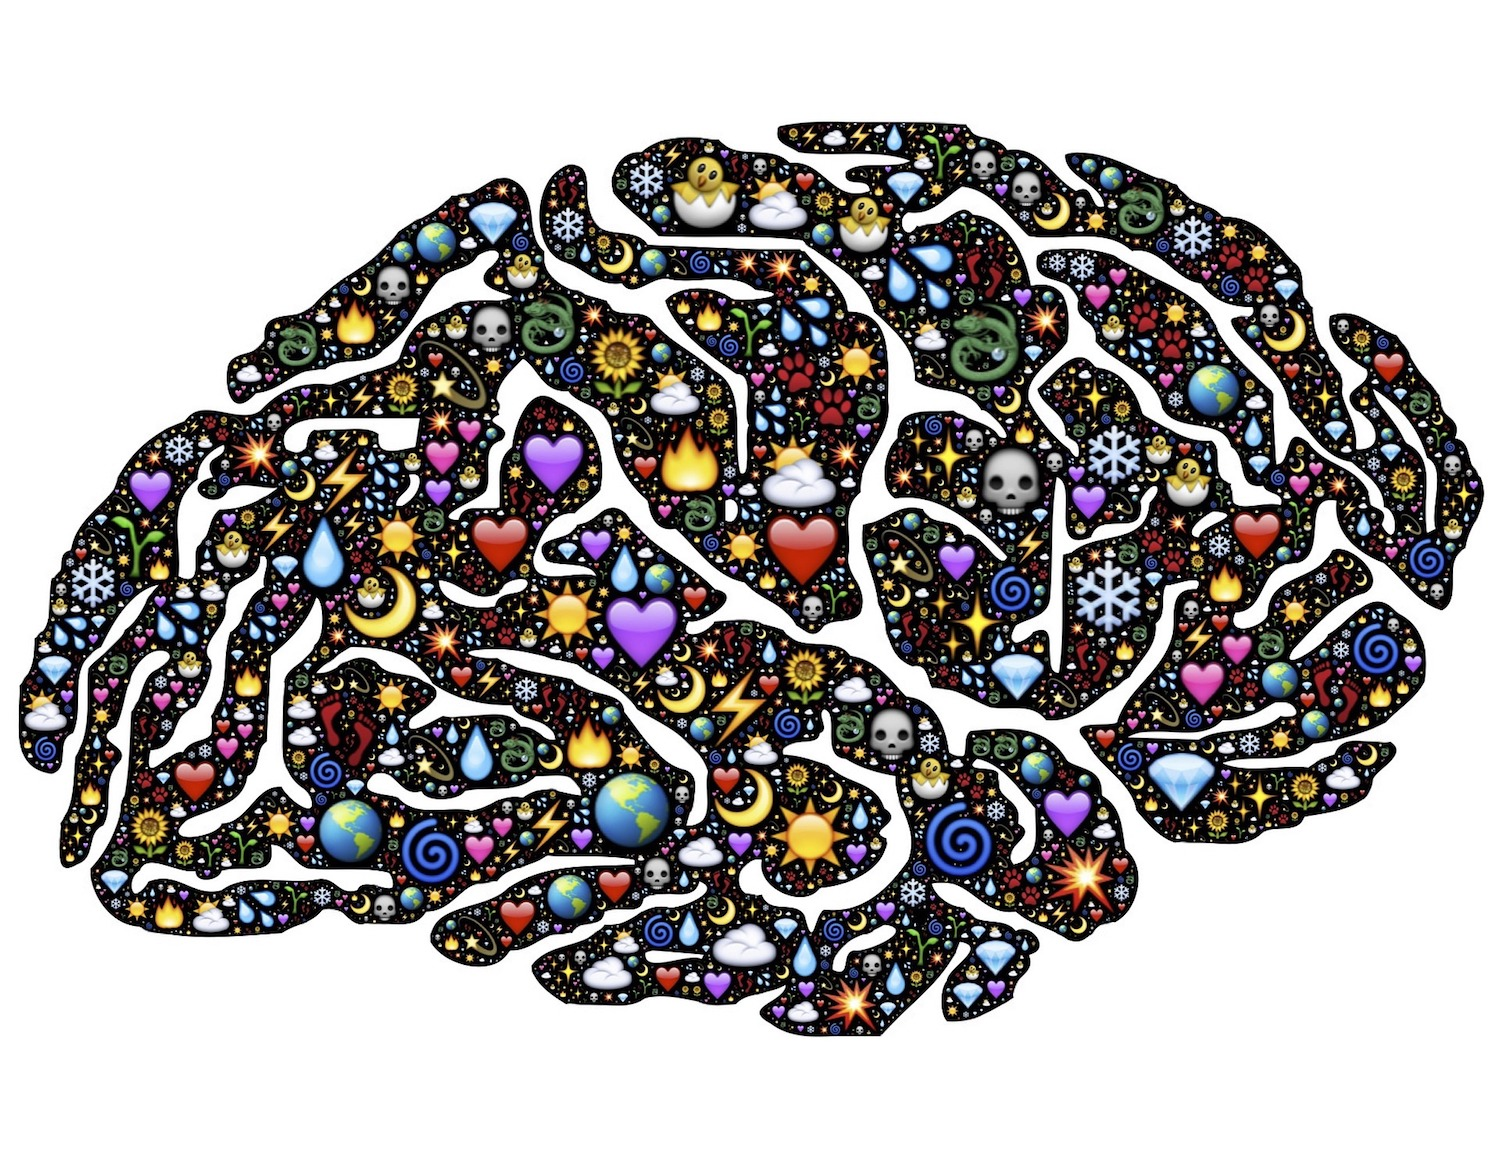 Where Does Consciousness Come From?